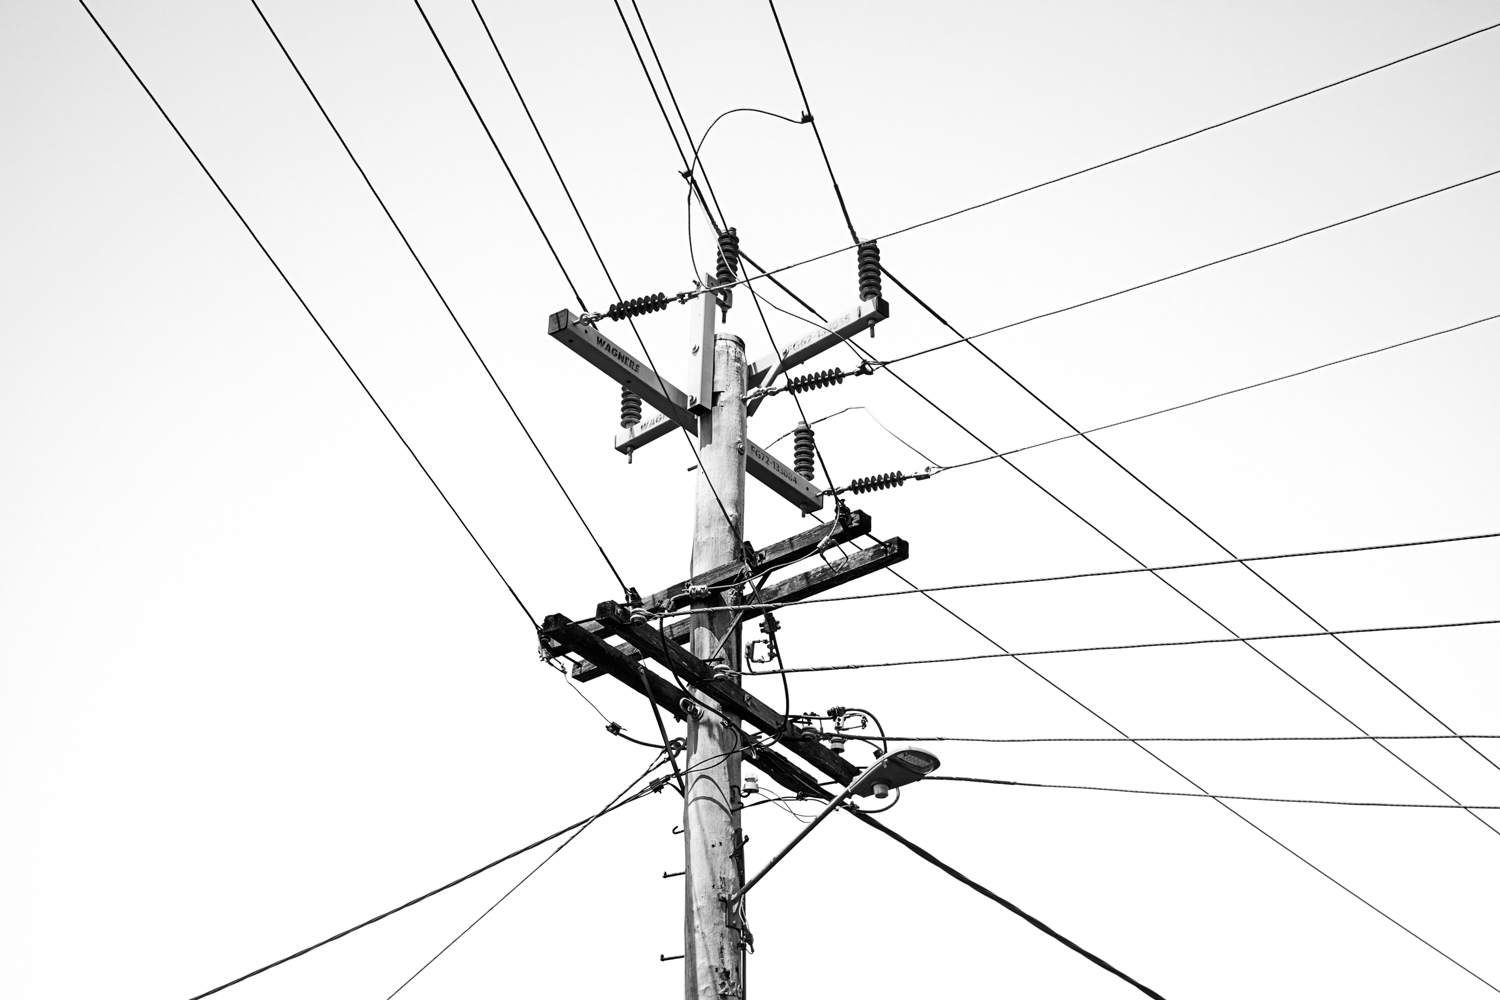 A utility pole with triangle composition